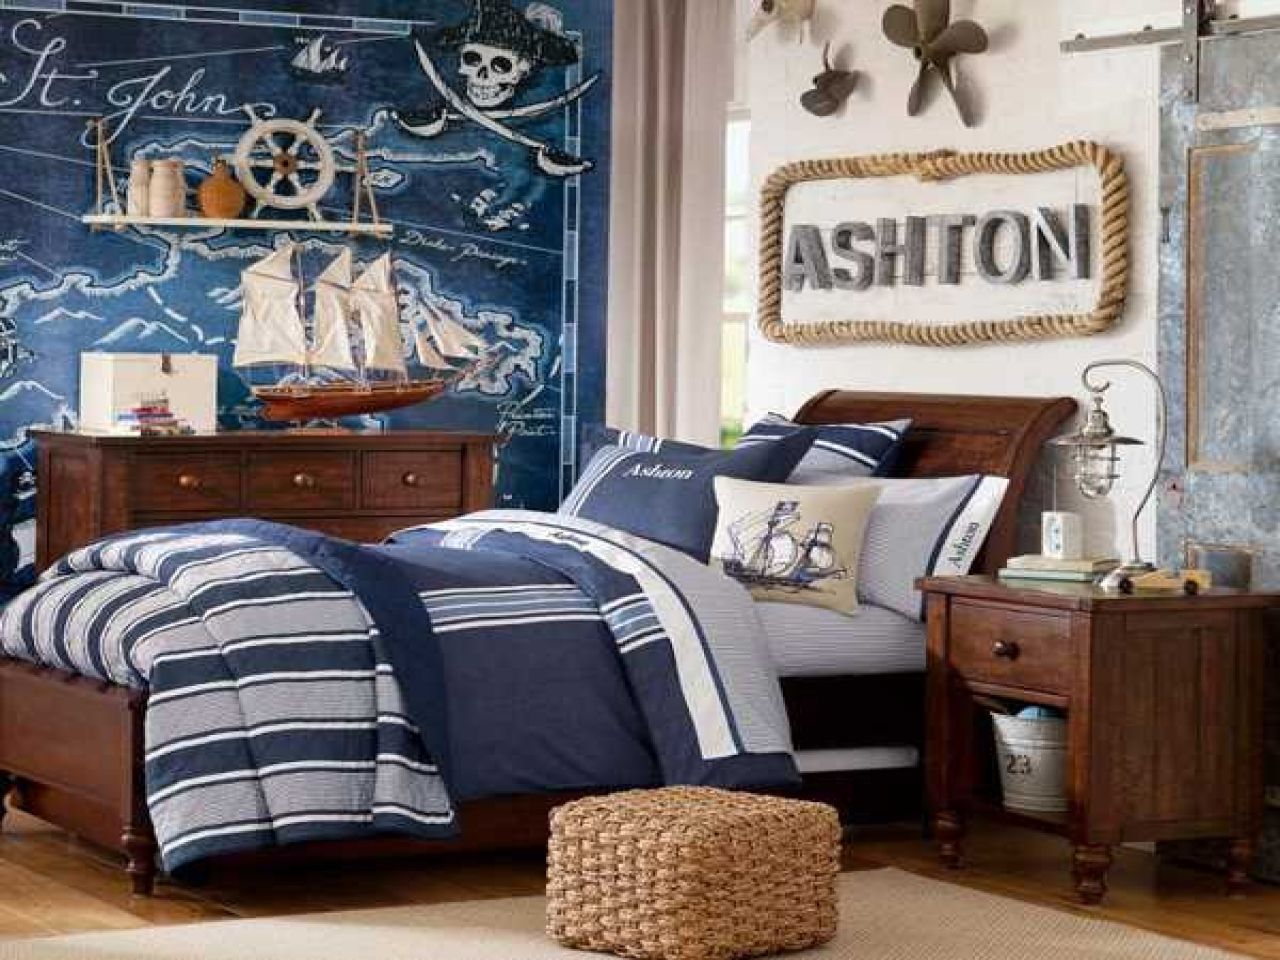 Pottery Barn Kids Bedroom Sets Useful Tips To Buy Kids Bedroom Sets